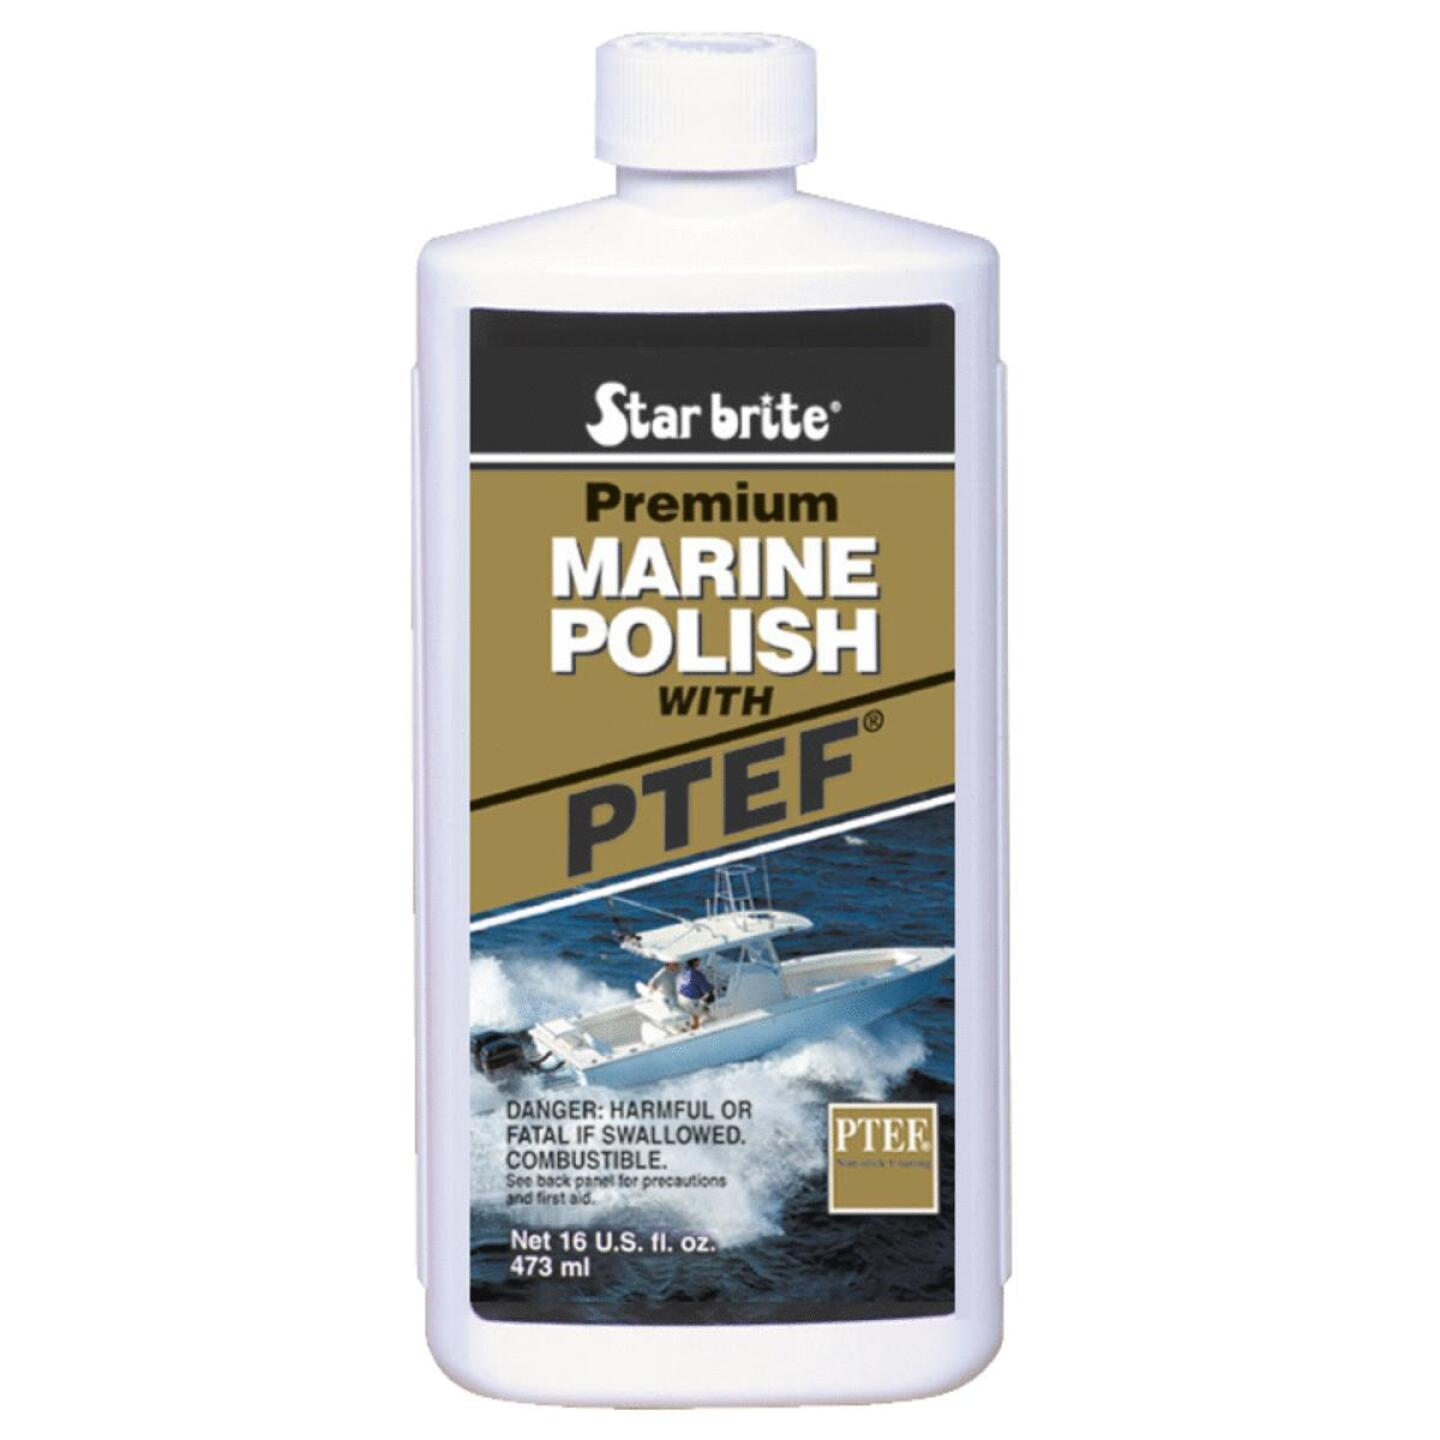 Starbrite 16 Oz. PTEF Boat Wax & Polish Image 1